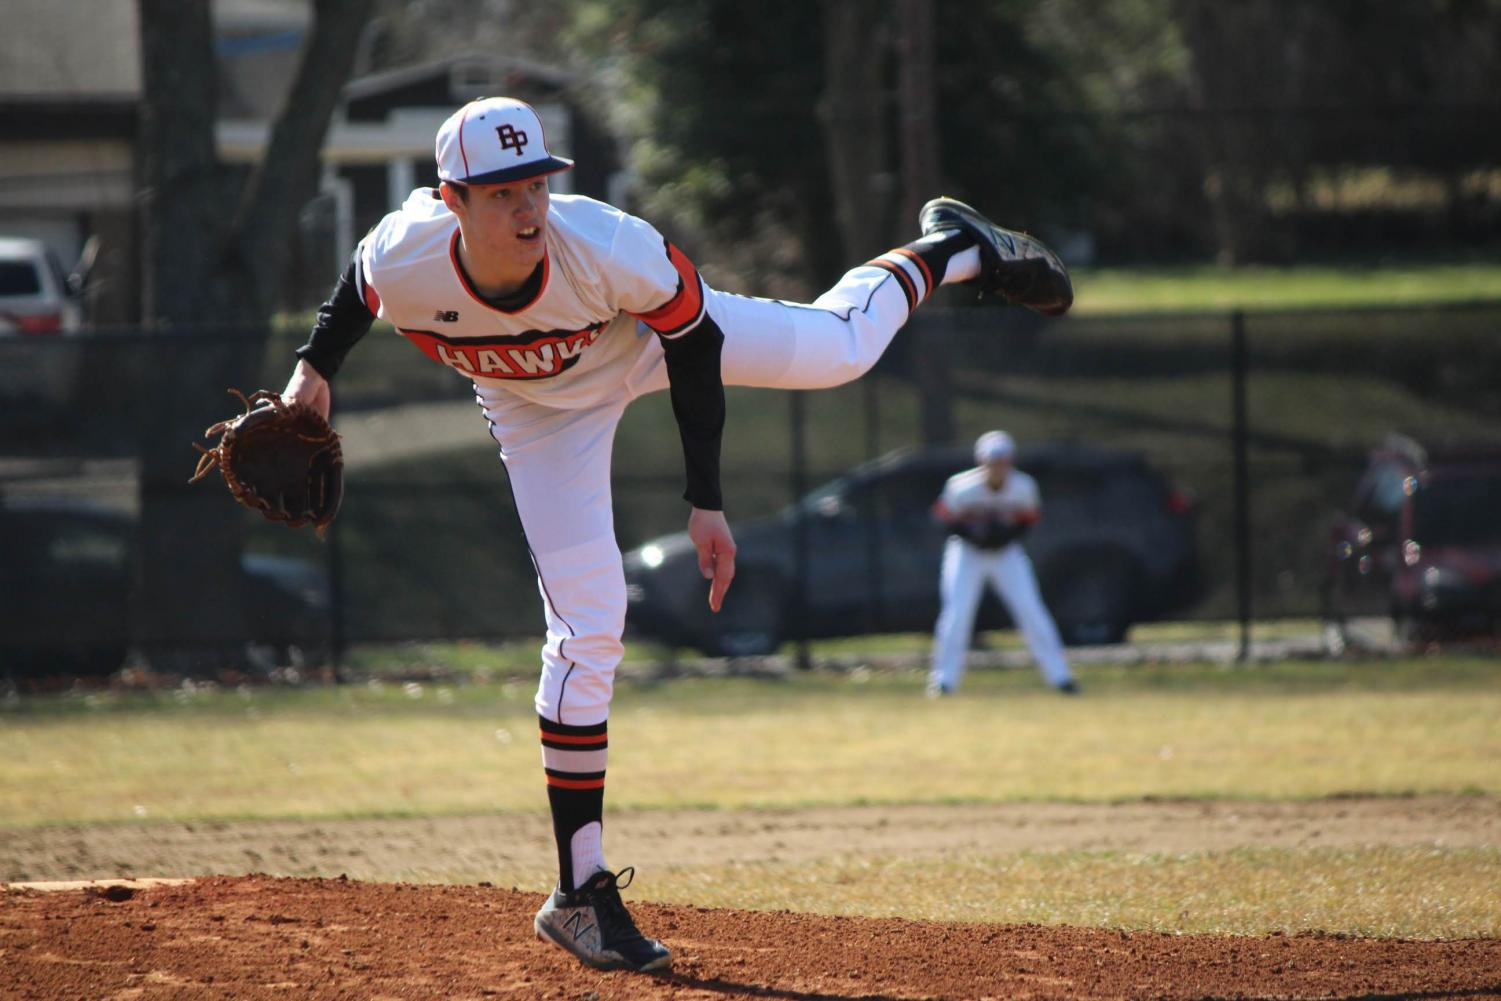 Sophomore pitcher Eric Chalus, Jr. pitches the entire game against the Rams on Wednesday, March 27.